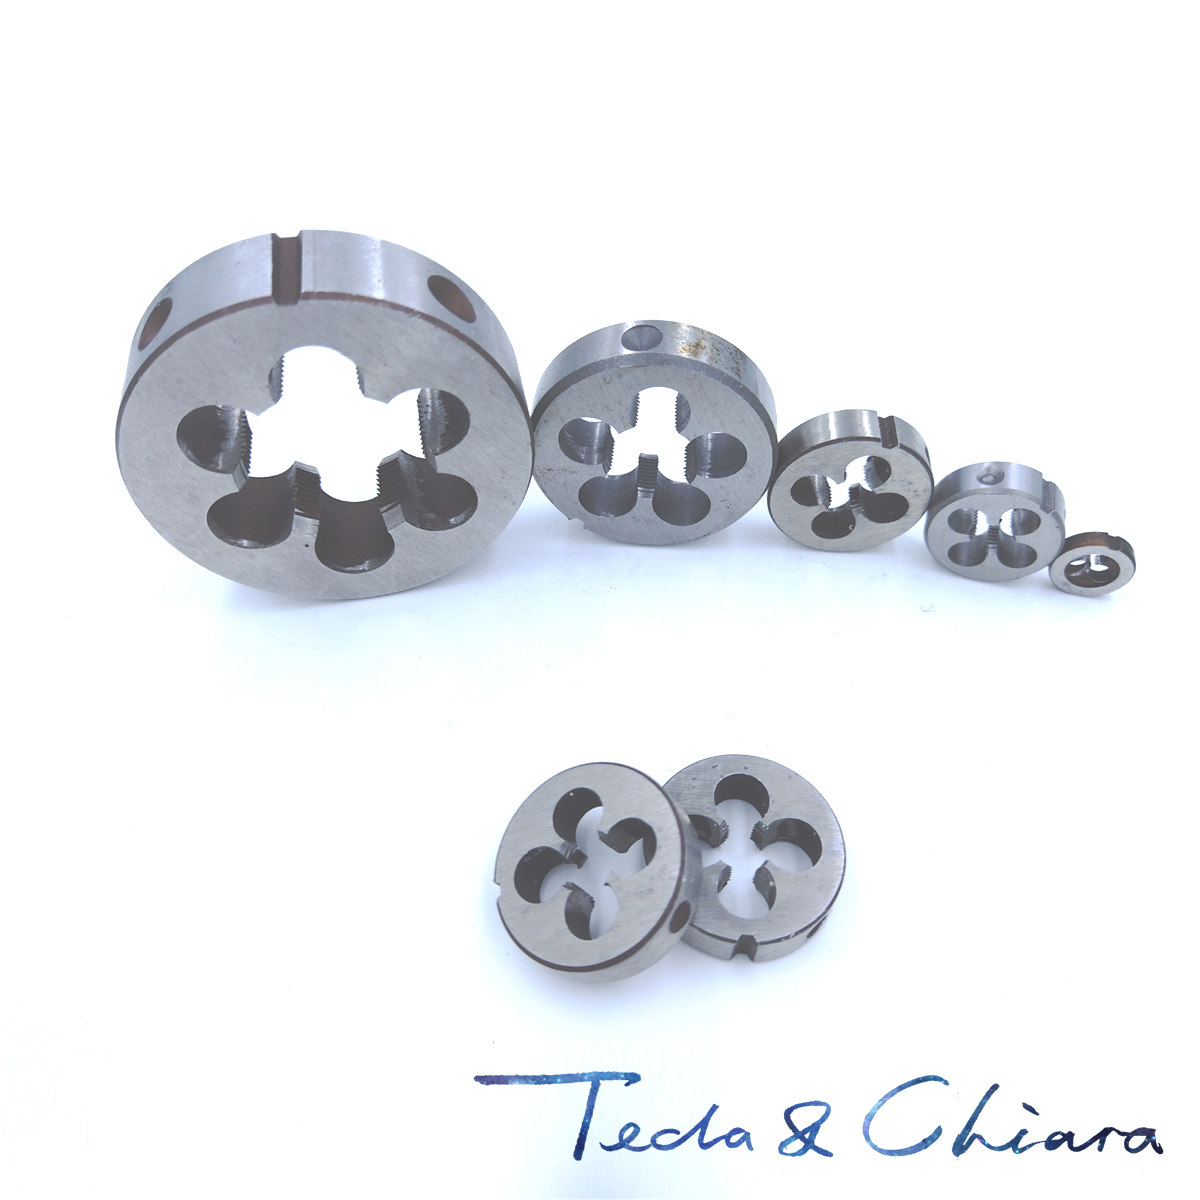 1Pc M11 X 0.75mm 1mm 1.25mm 1.5mm Metric Die Right Hand Pitch Threading Tools For Mold Machining * 0.75 1 1.25 1.5